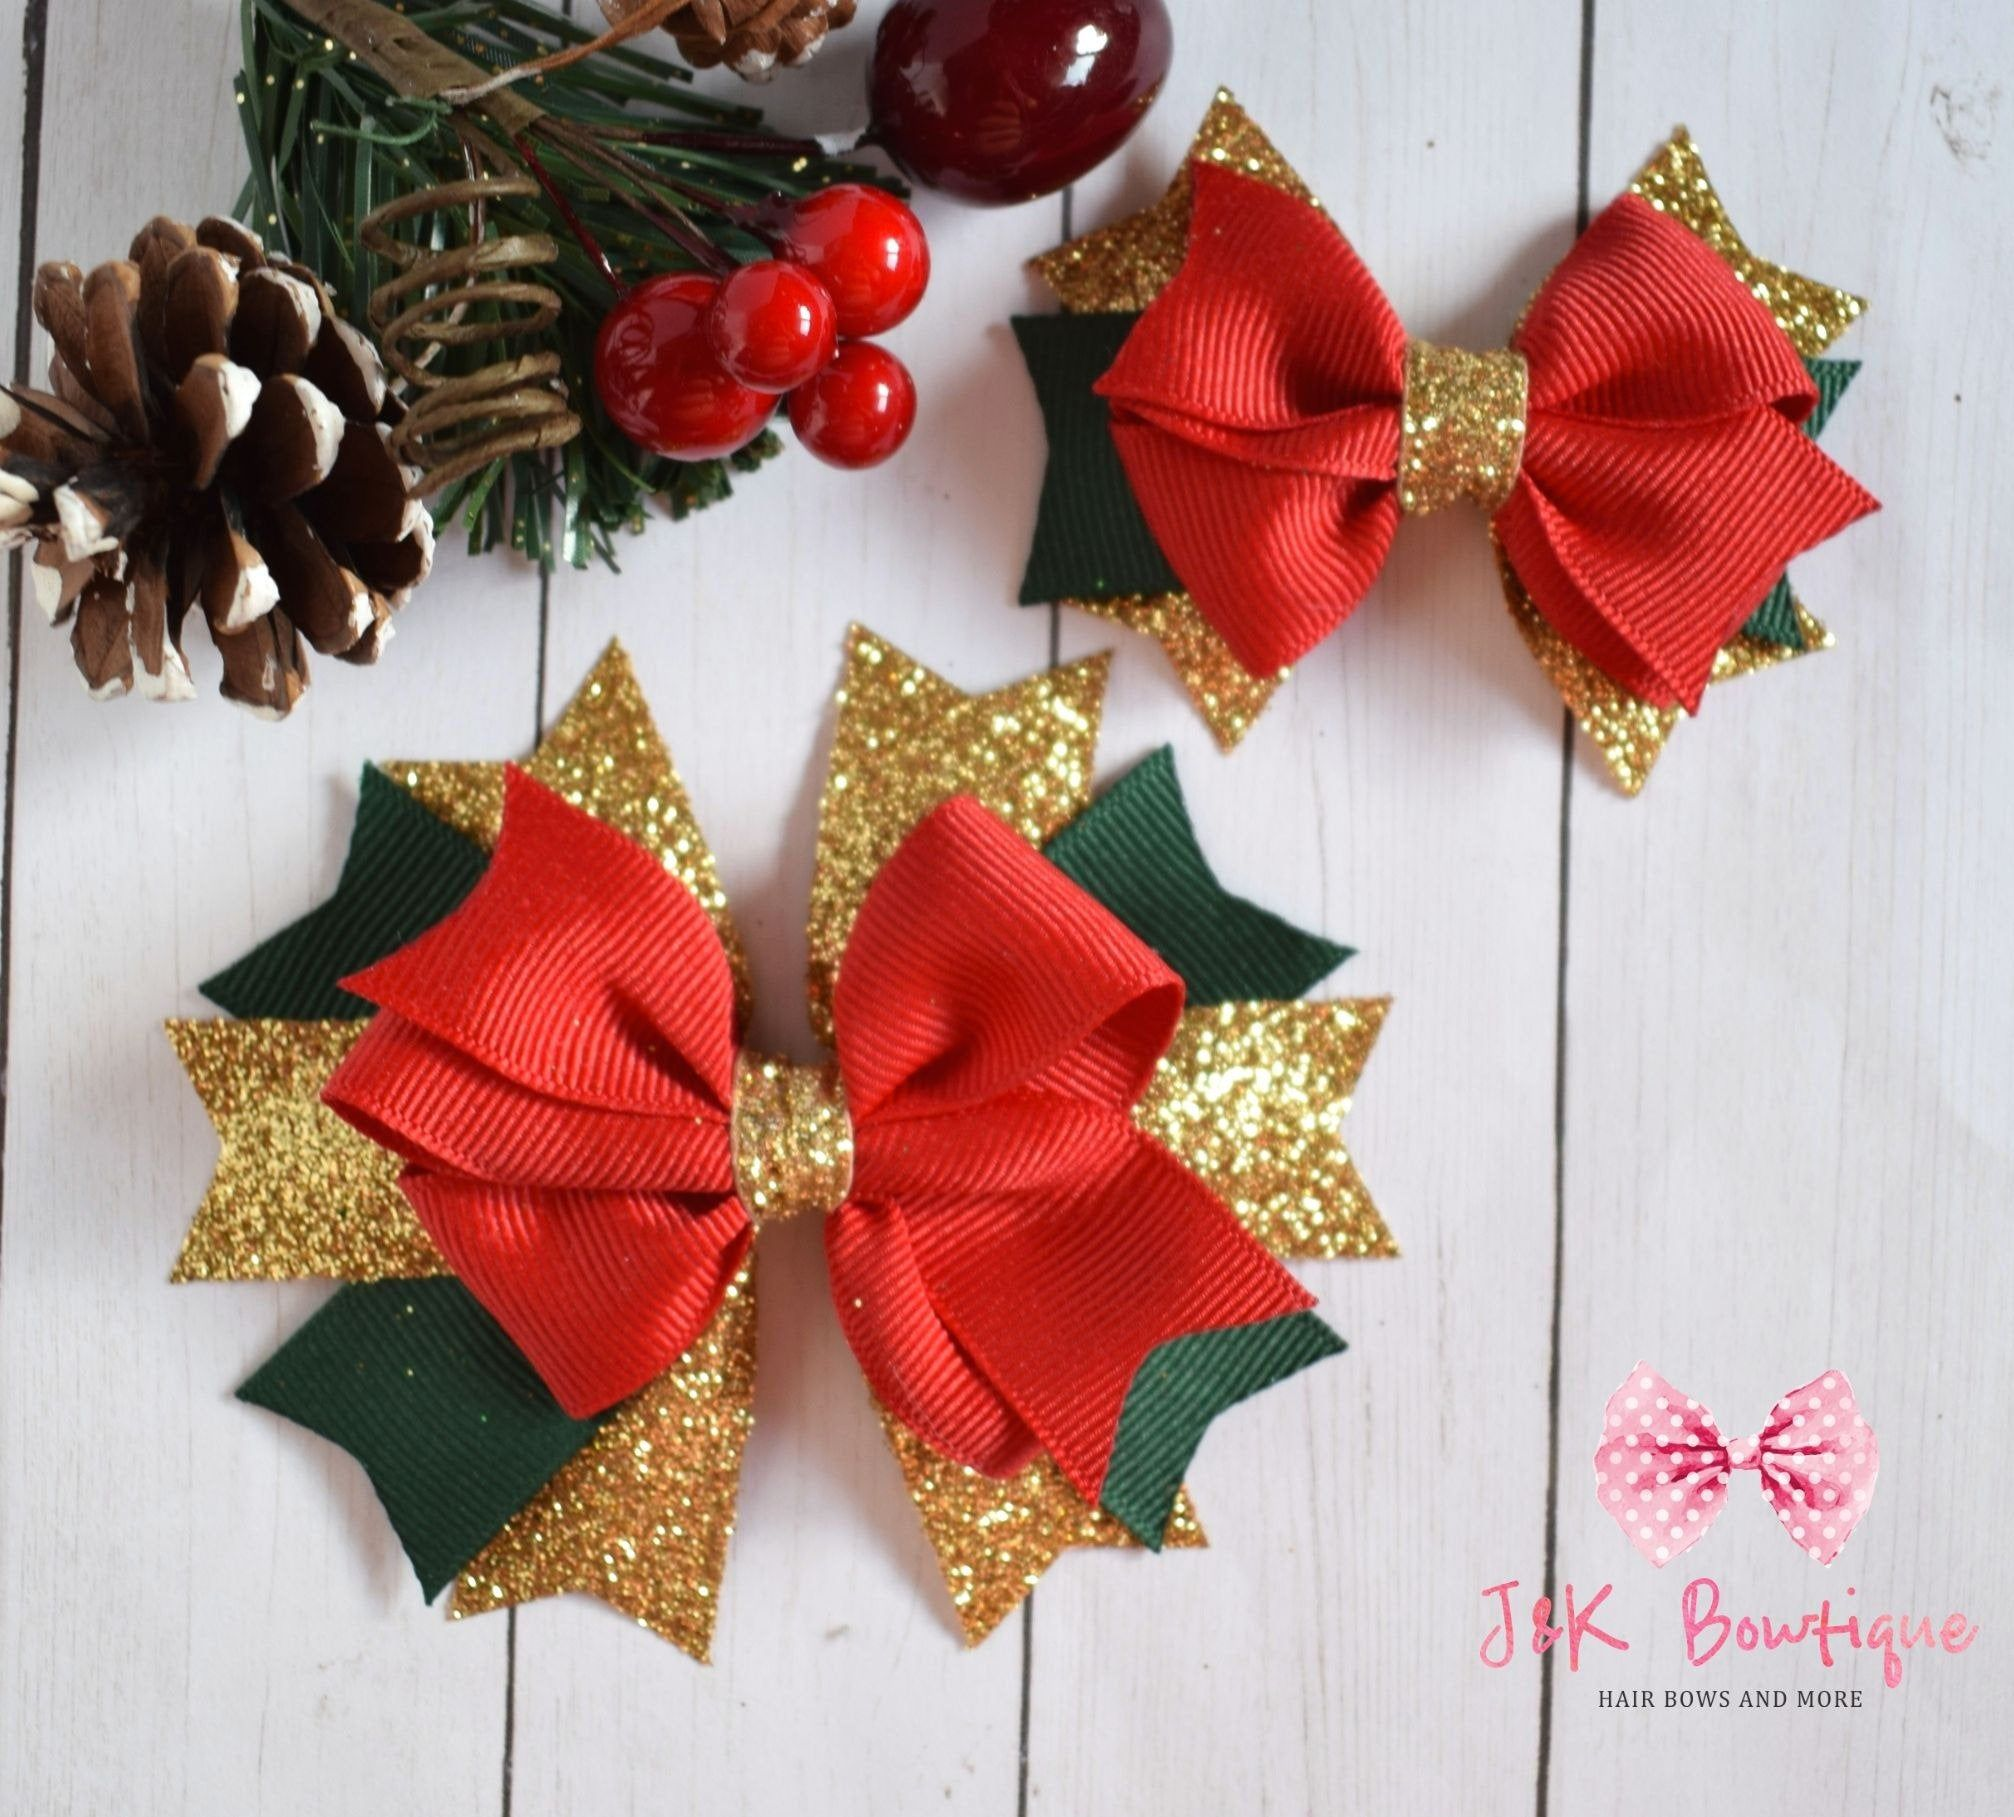 Red And Green Boutique Bow Red Bow Large Hair Bow Christmas Bows Gold Glitter Bow Holiday Hair Bow Girl Gift Red Geen Gold Hair Bow In 2020 Gold Hair Bow Holiday